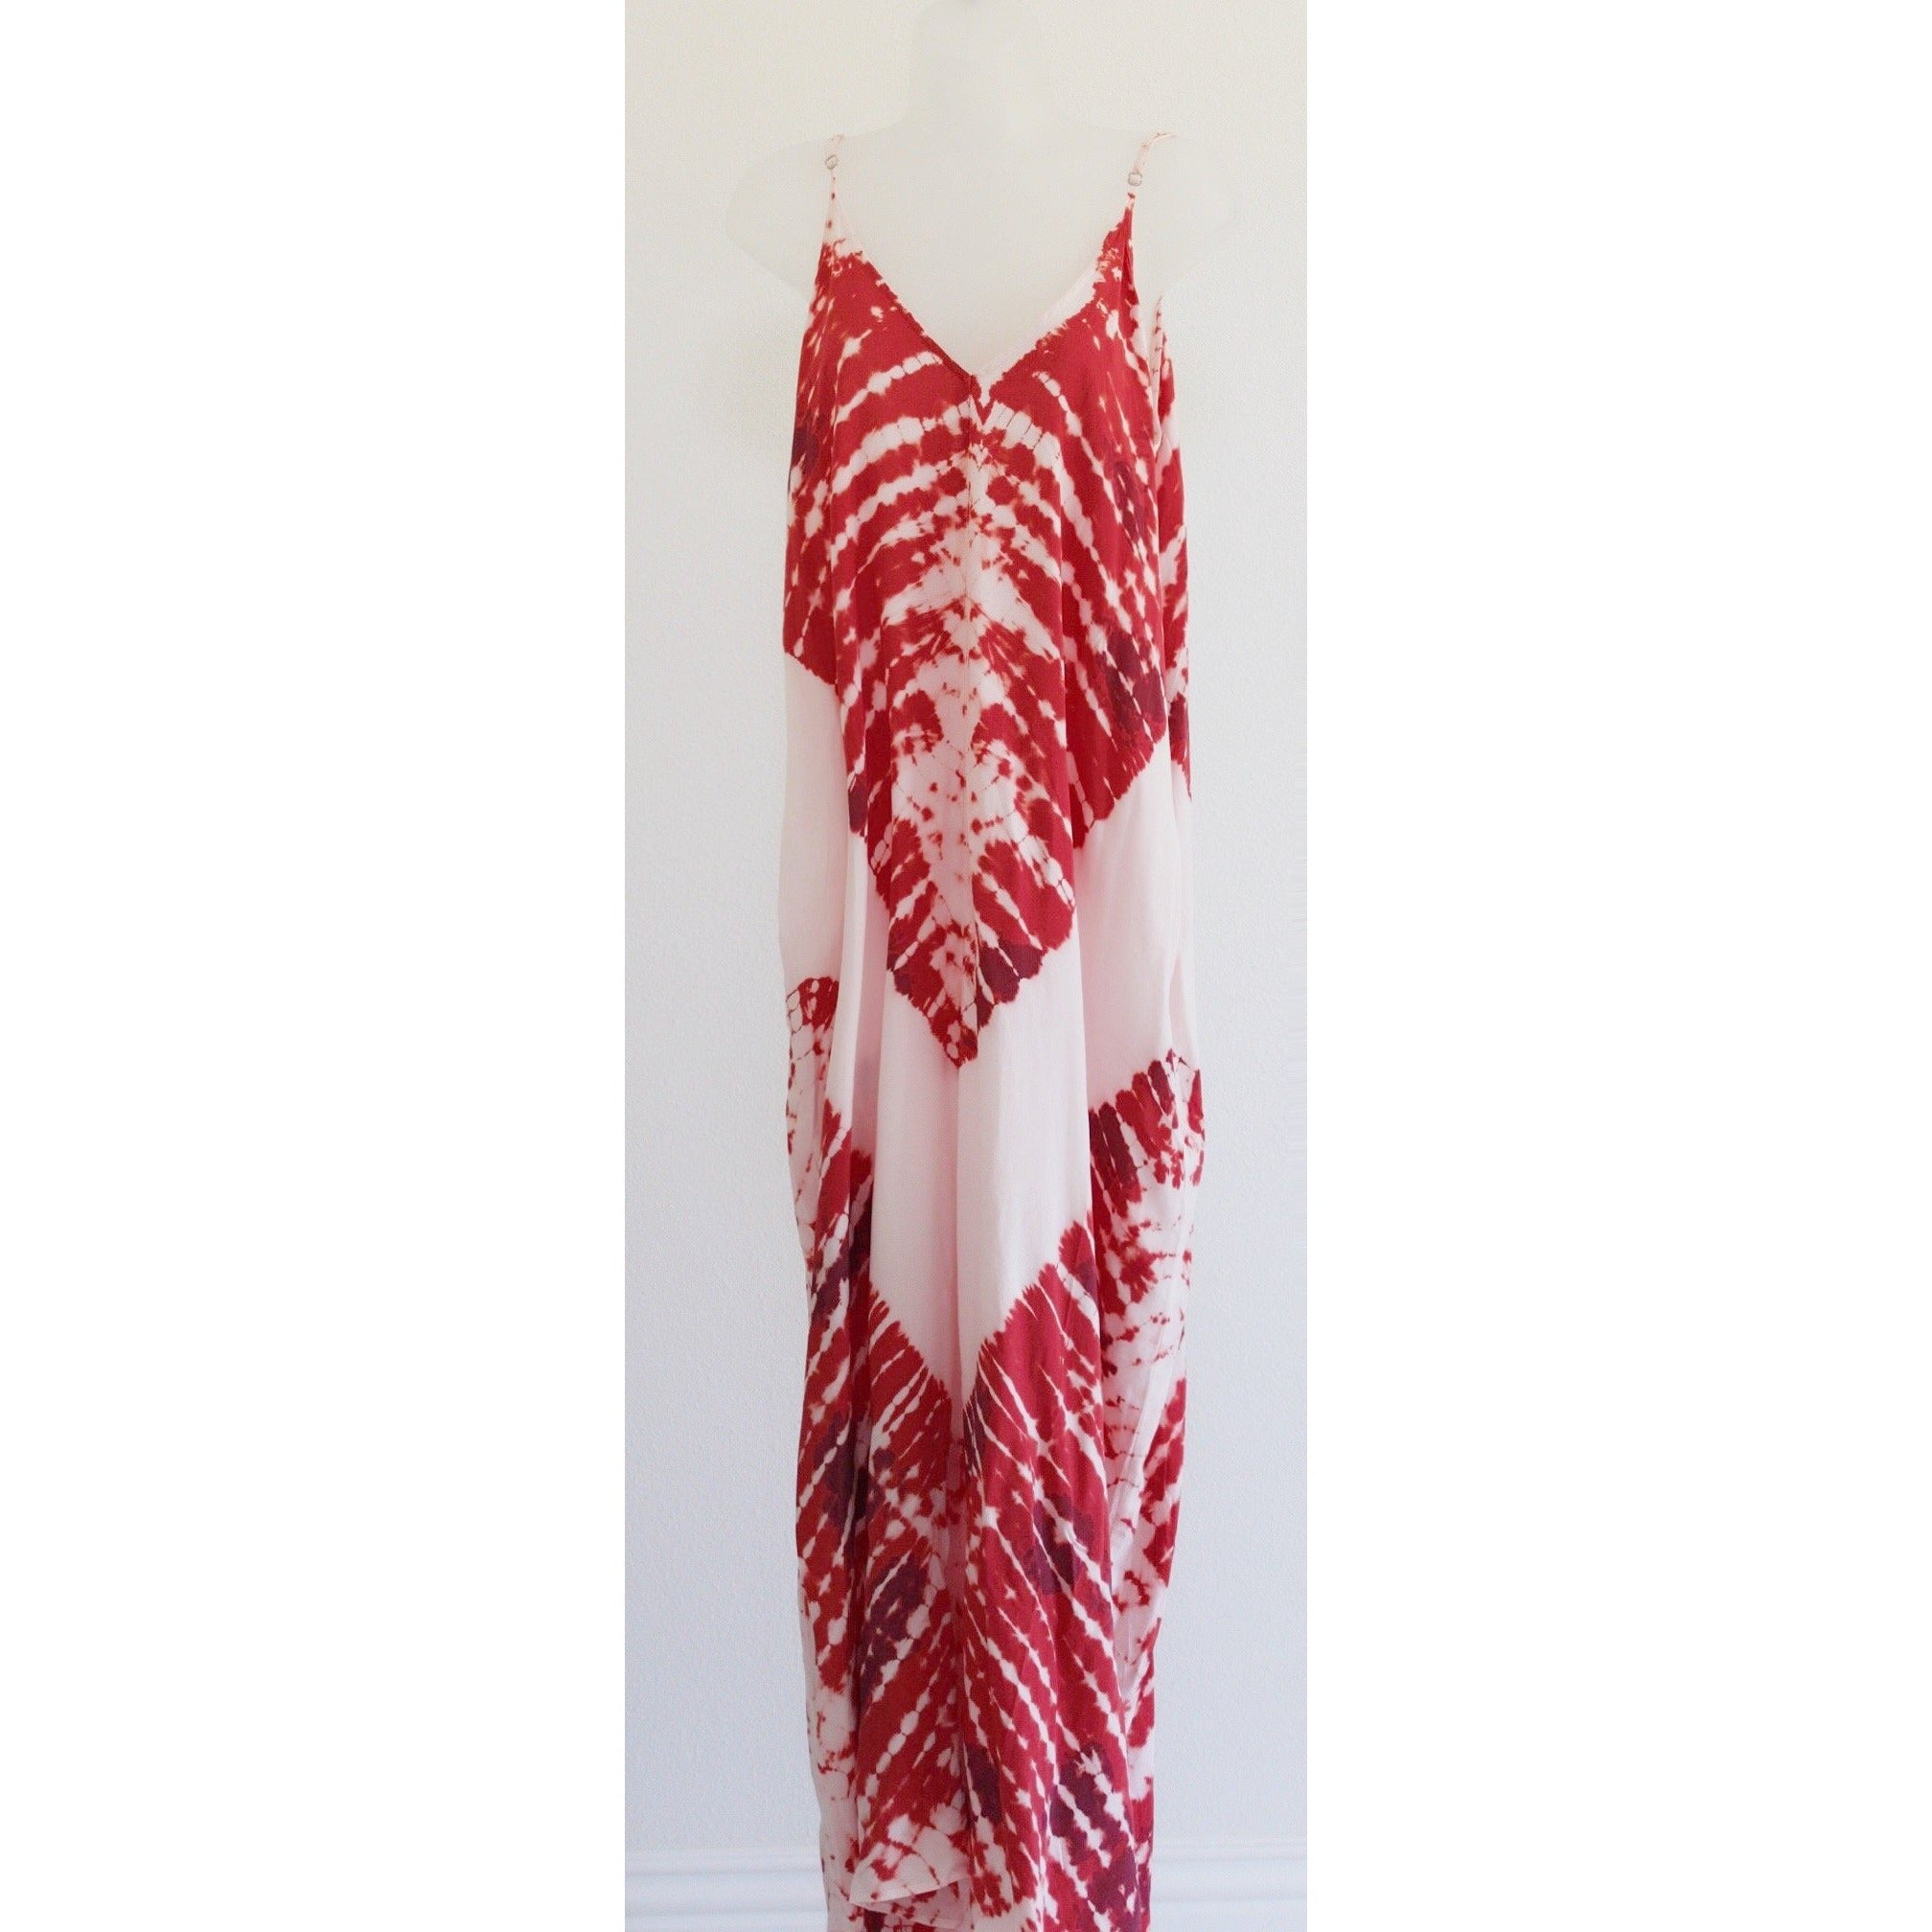 SALE ! Marbella Mila Maxi Dress by Lovestitch - Glamco Boutique